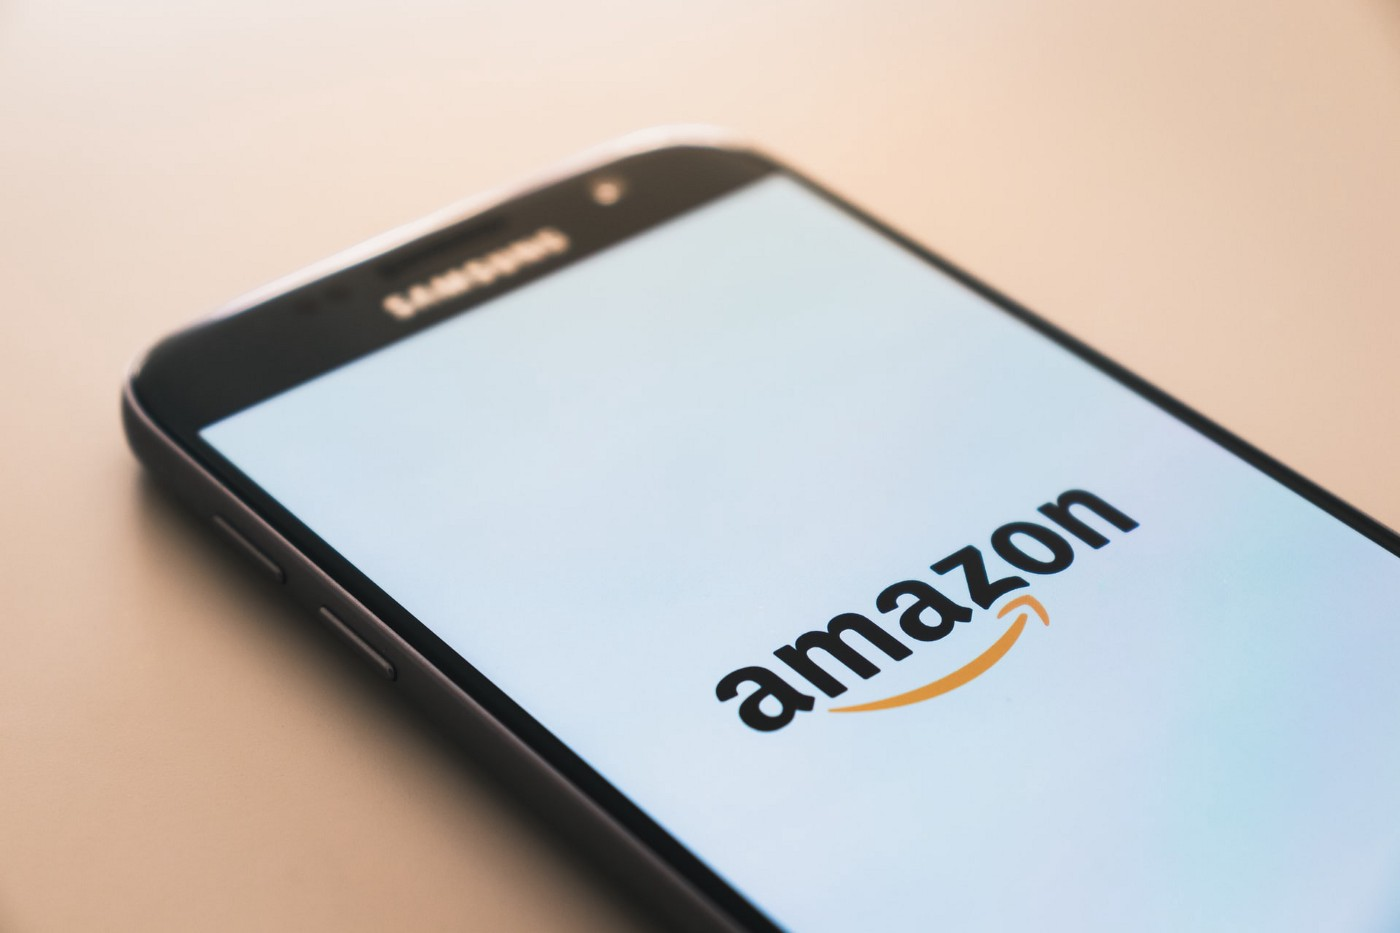 photo of phone with Amazon logo showing the App open